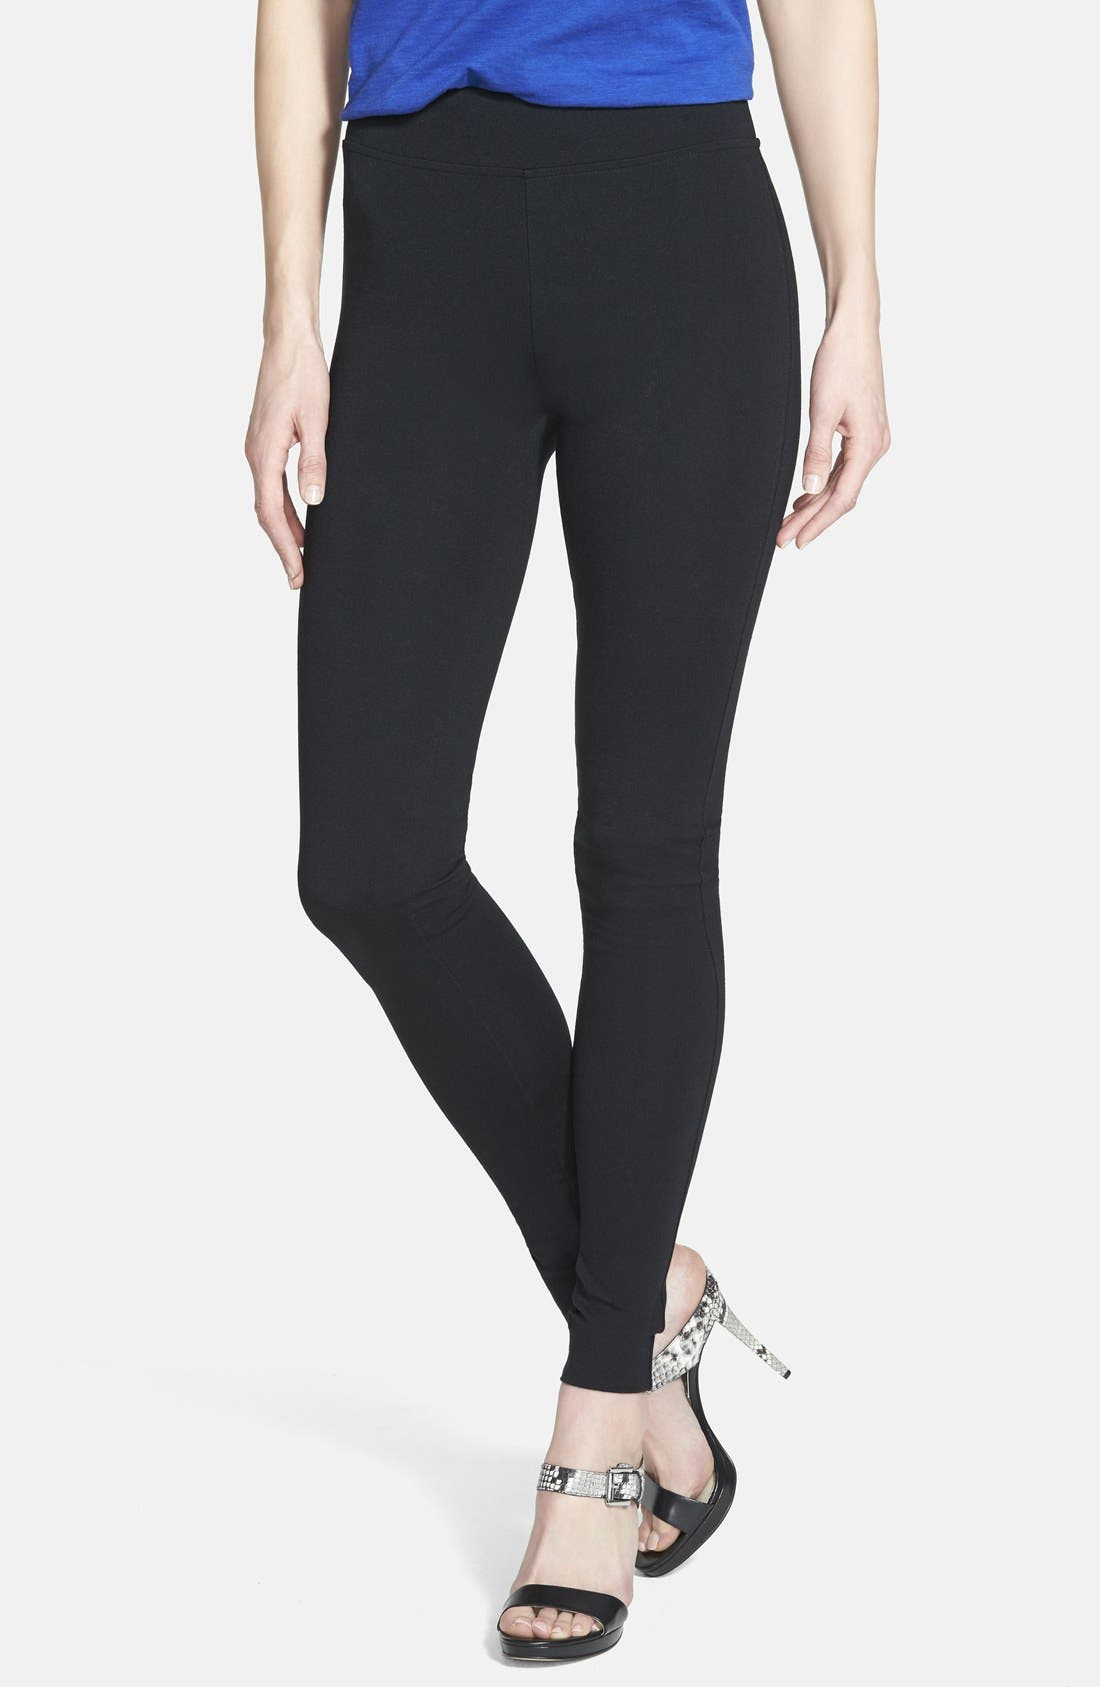 NIC+ZOE 'Perfect' Leggings